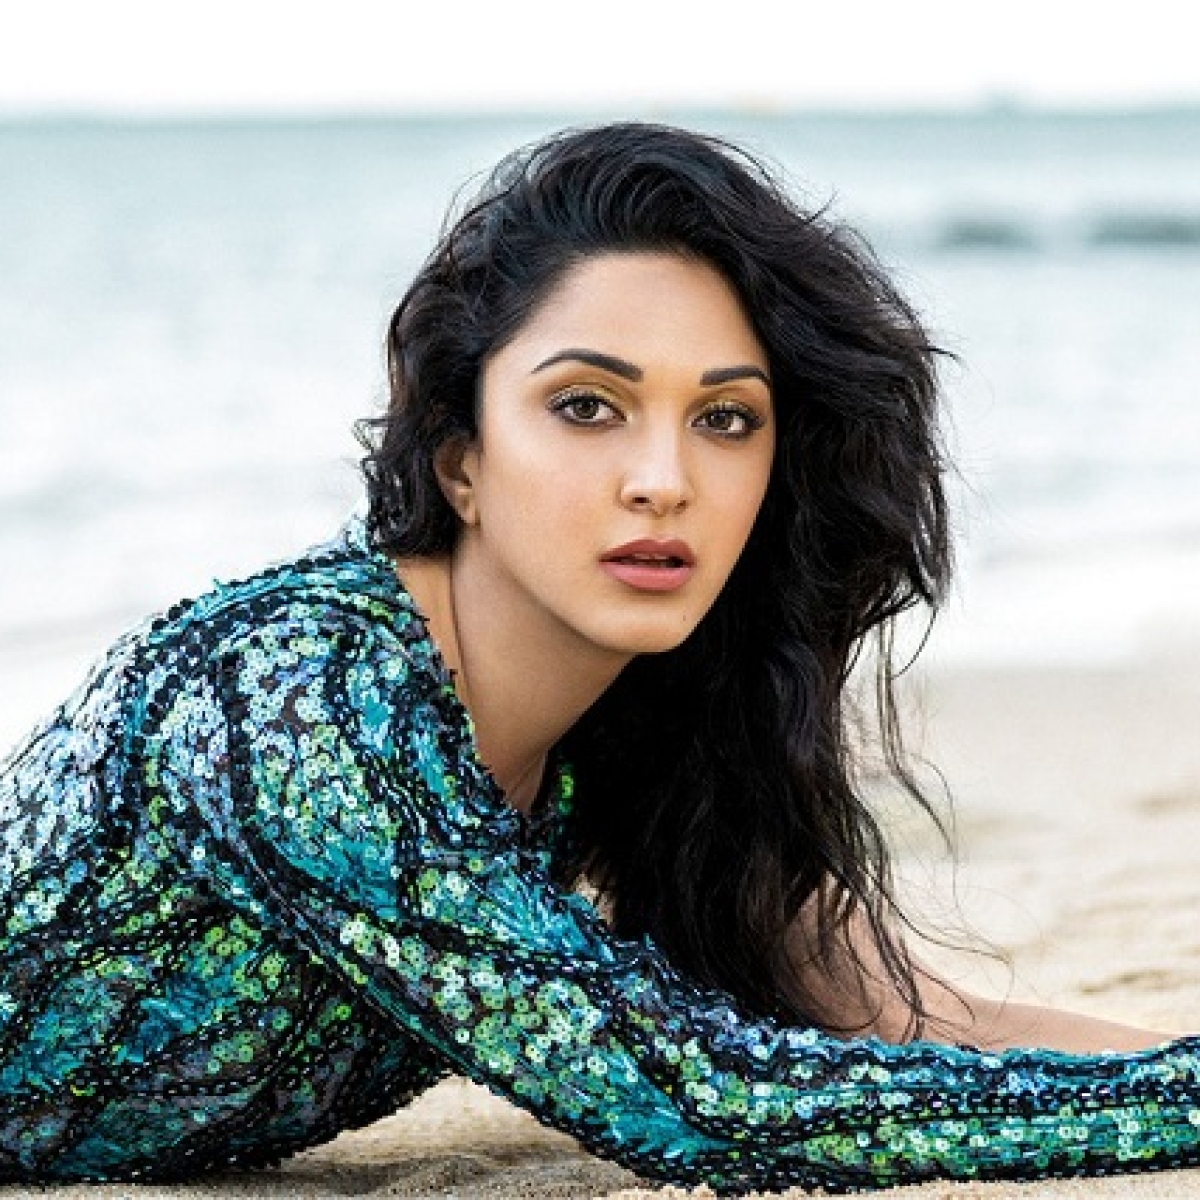 This is how Kiara Advani makes the best use of sunset